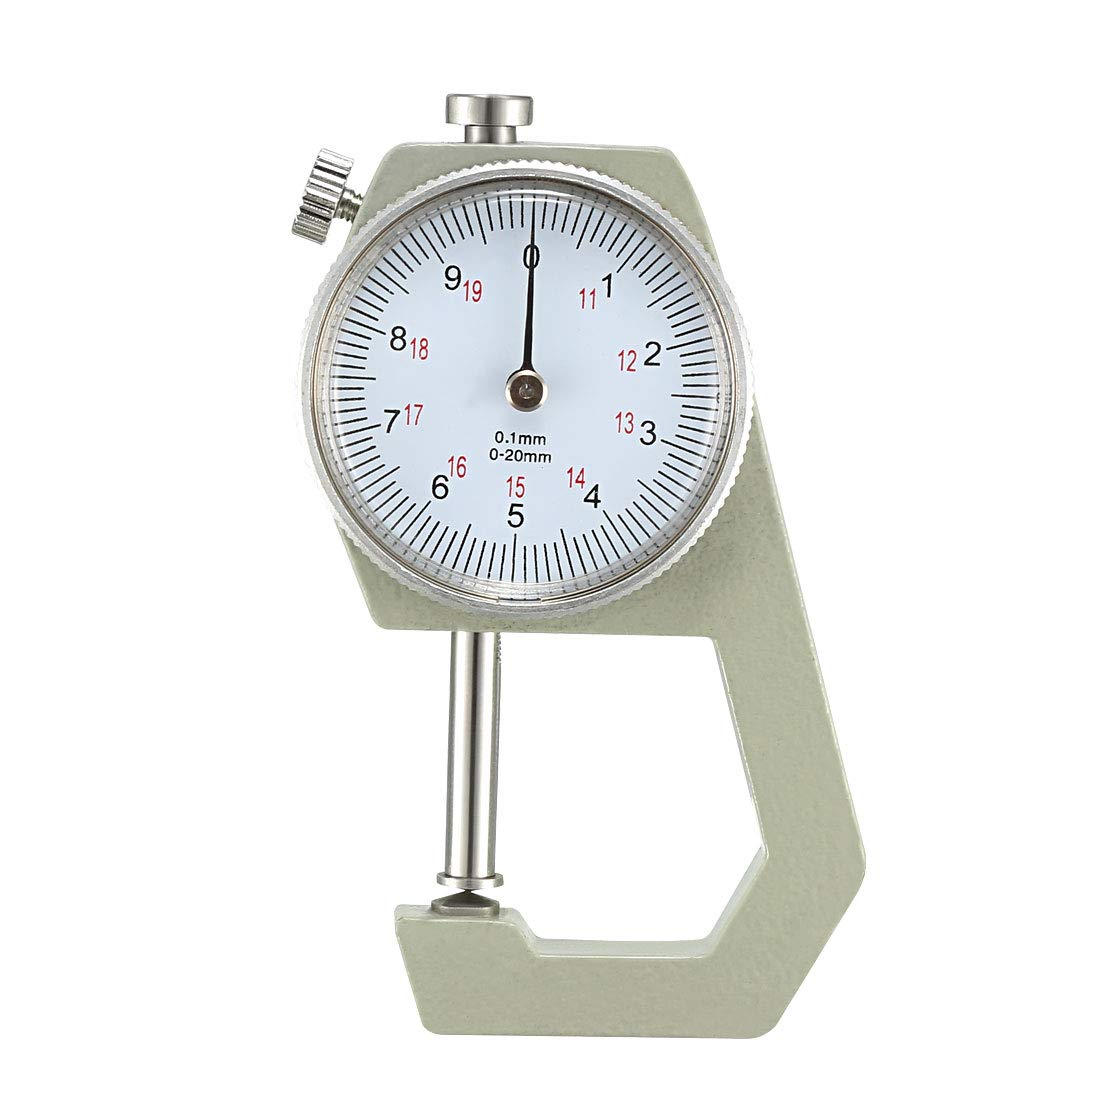 uxcell Thickness Gauge 0-20mm x Head Dial All items free shipping Cusp unisex 0.1mm